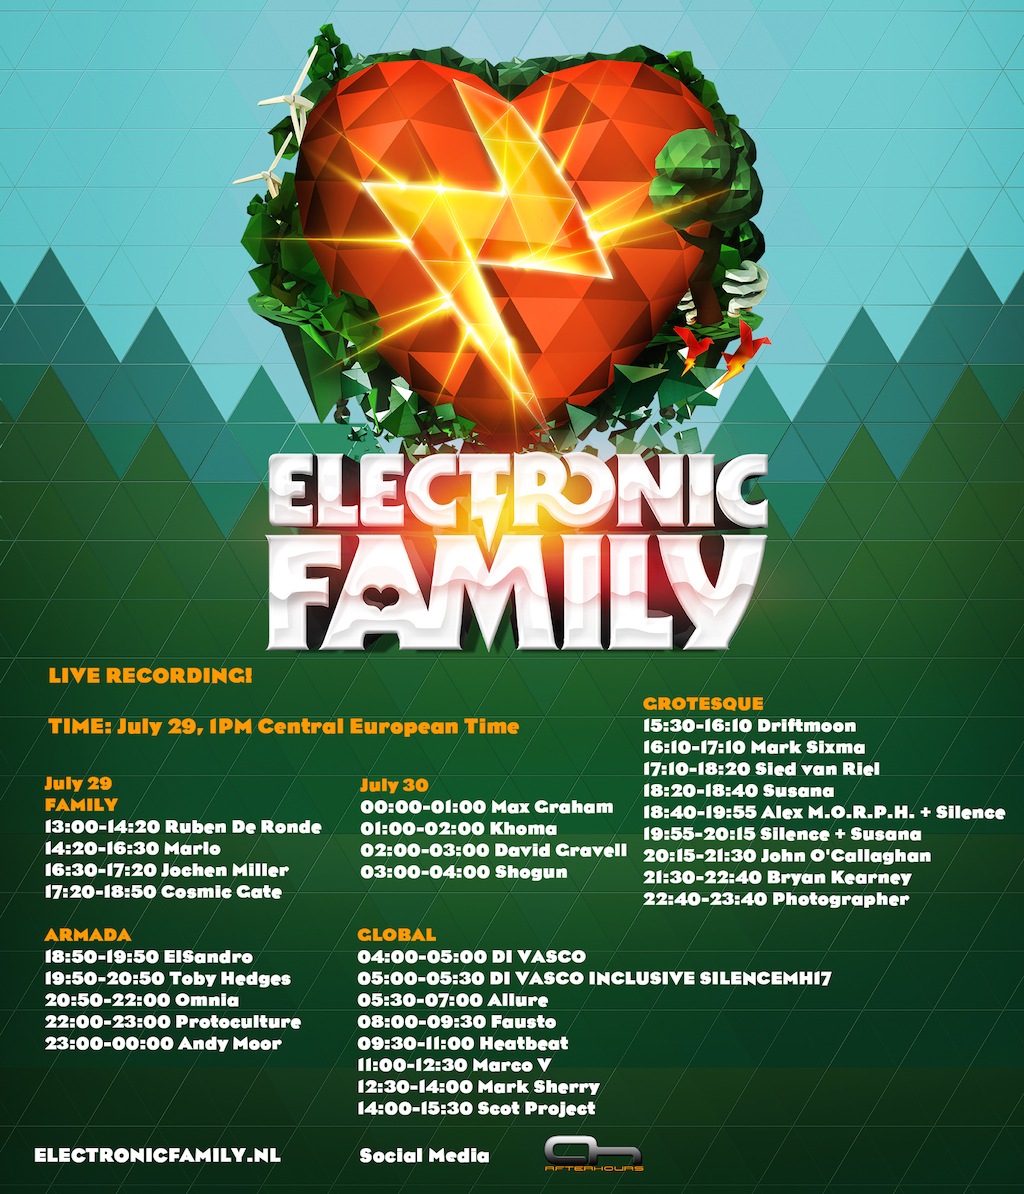 [img width=1024 height=1194]http://ah.fm/events/Live_Broadcasts/Electronic_Family_2014.jpg[/img]